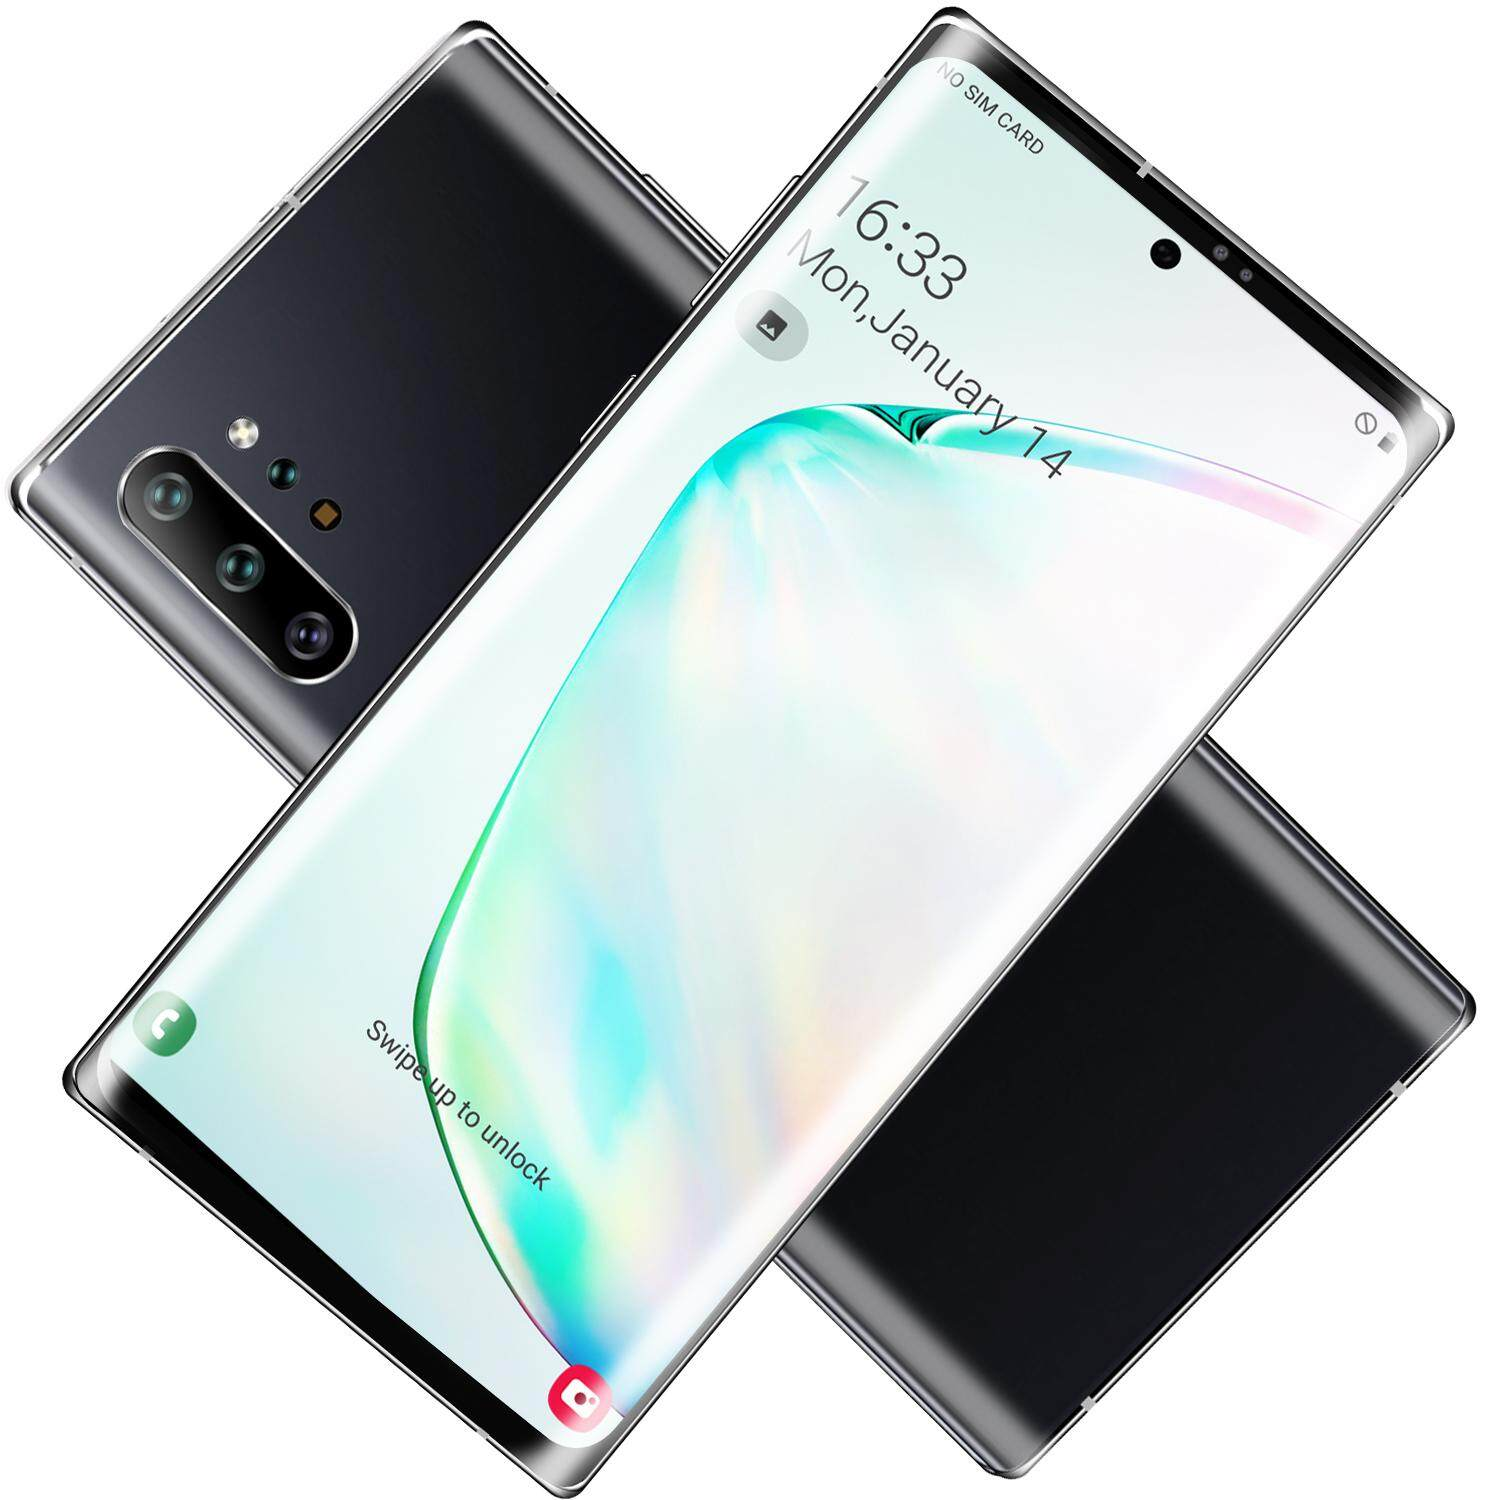 Note10 + Smart Gaming Phone Special Price Facial Dual Unlock 6g + 128g Dual Sim Card Android 9.0 System 10 Core Processor.